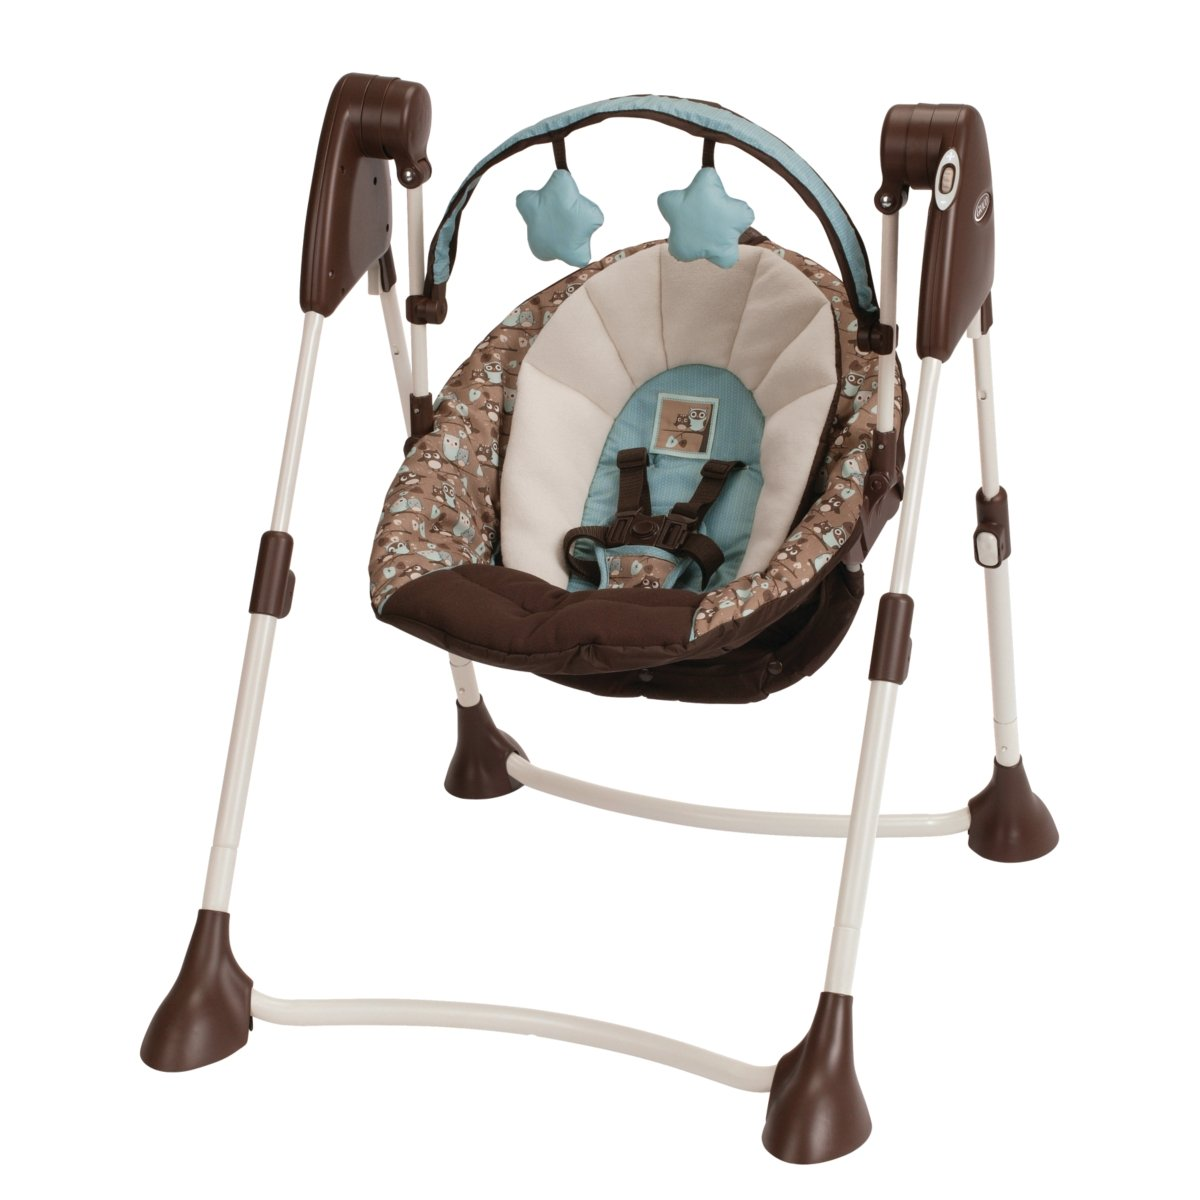 graco duodiner lx 3 in 1 highchair instructions wheel chair sex fisher price cradle n swing baby gear and accessories